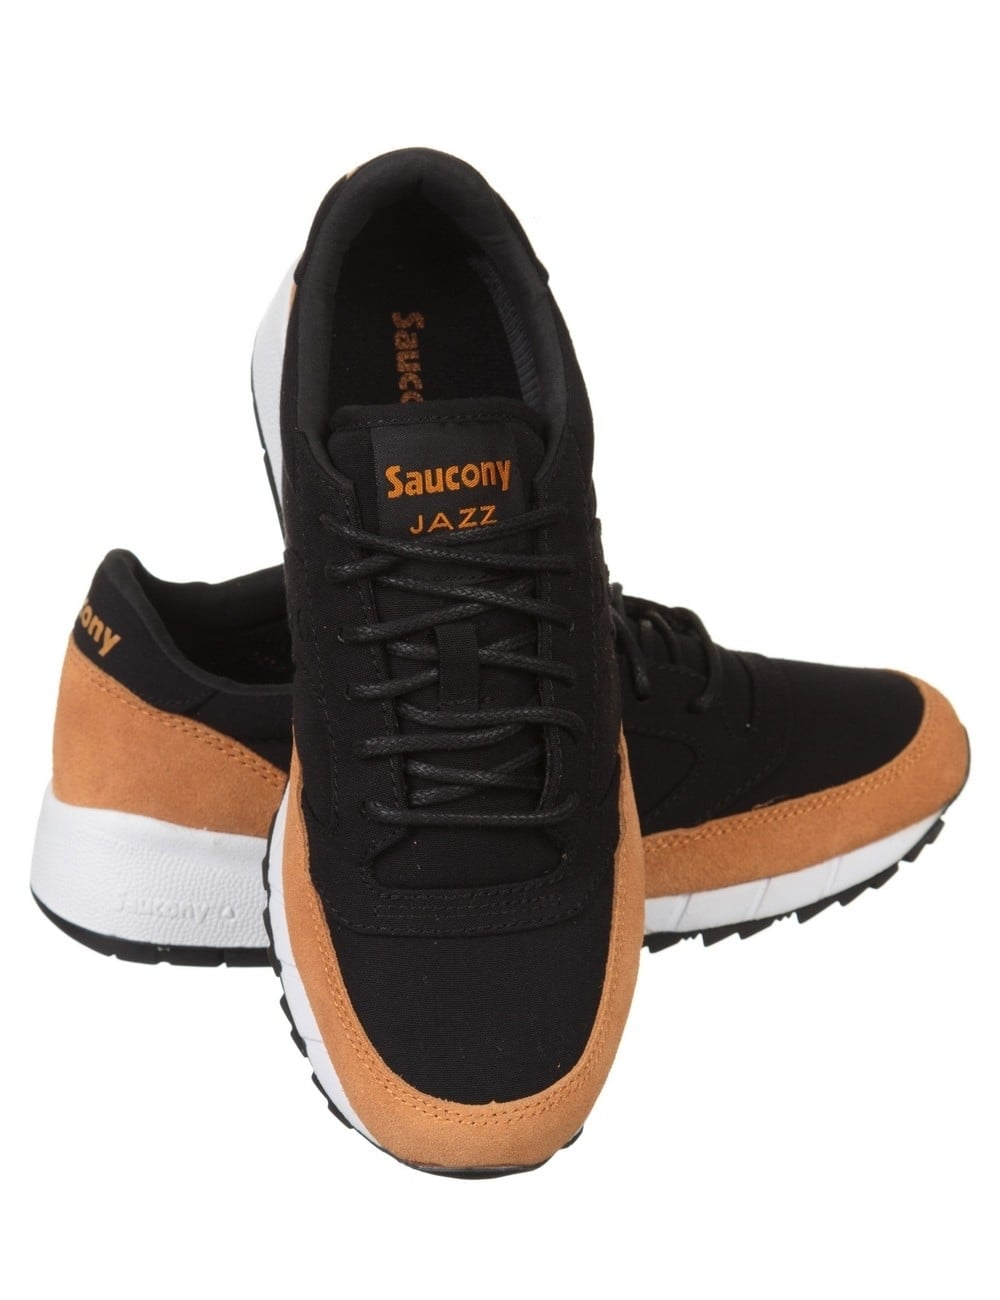 good service pretty cheap new specials Saucony Jazz '91 Shoes - Black/Yellow - Footwear from Fat Buddha ...